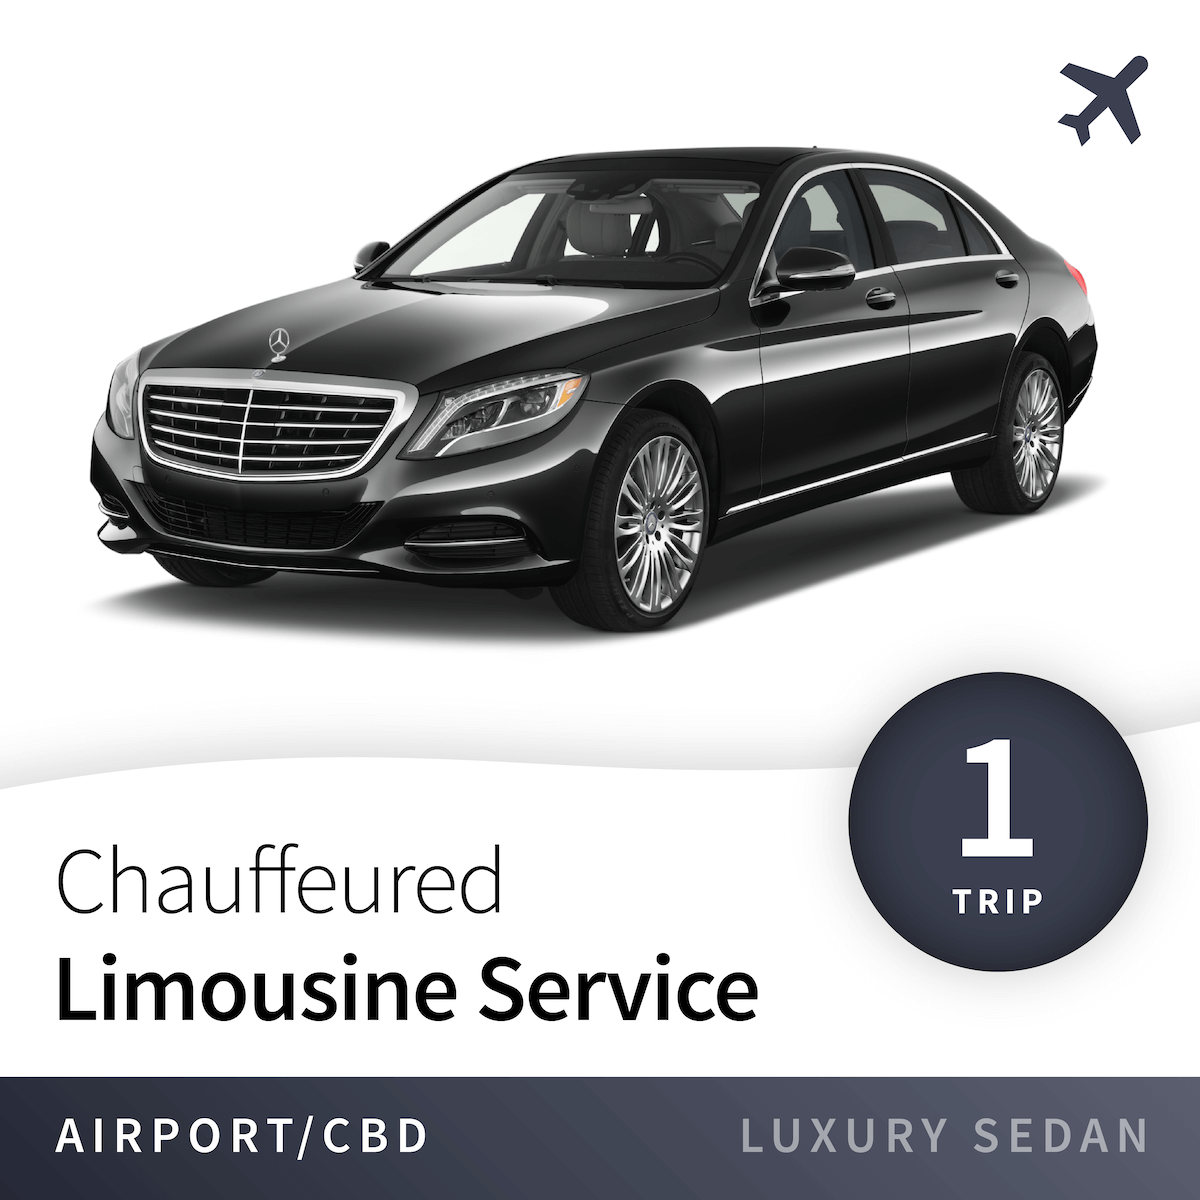 Chauffeured Limousine Service - Airport - Luxury Sedan (1 Trip) 6